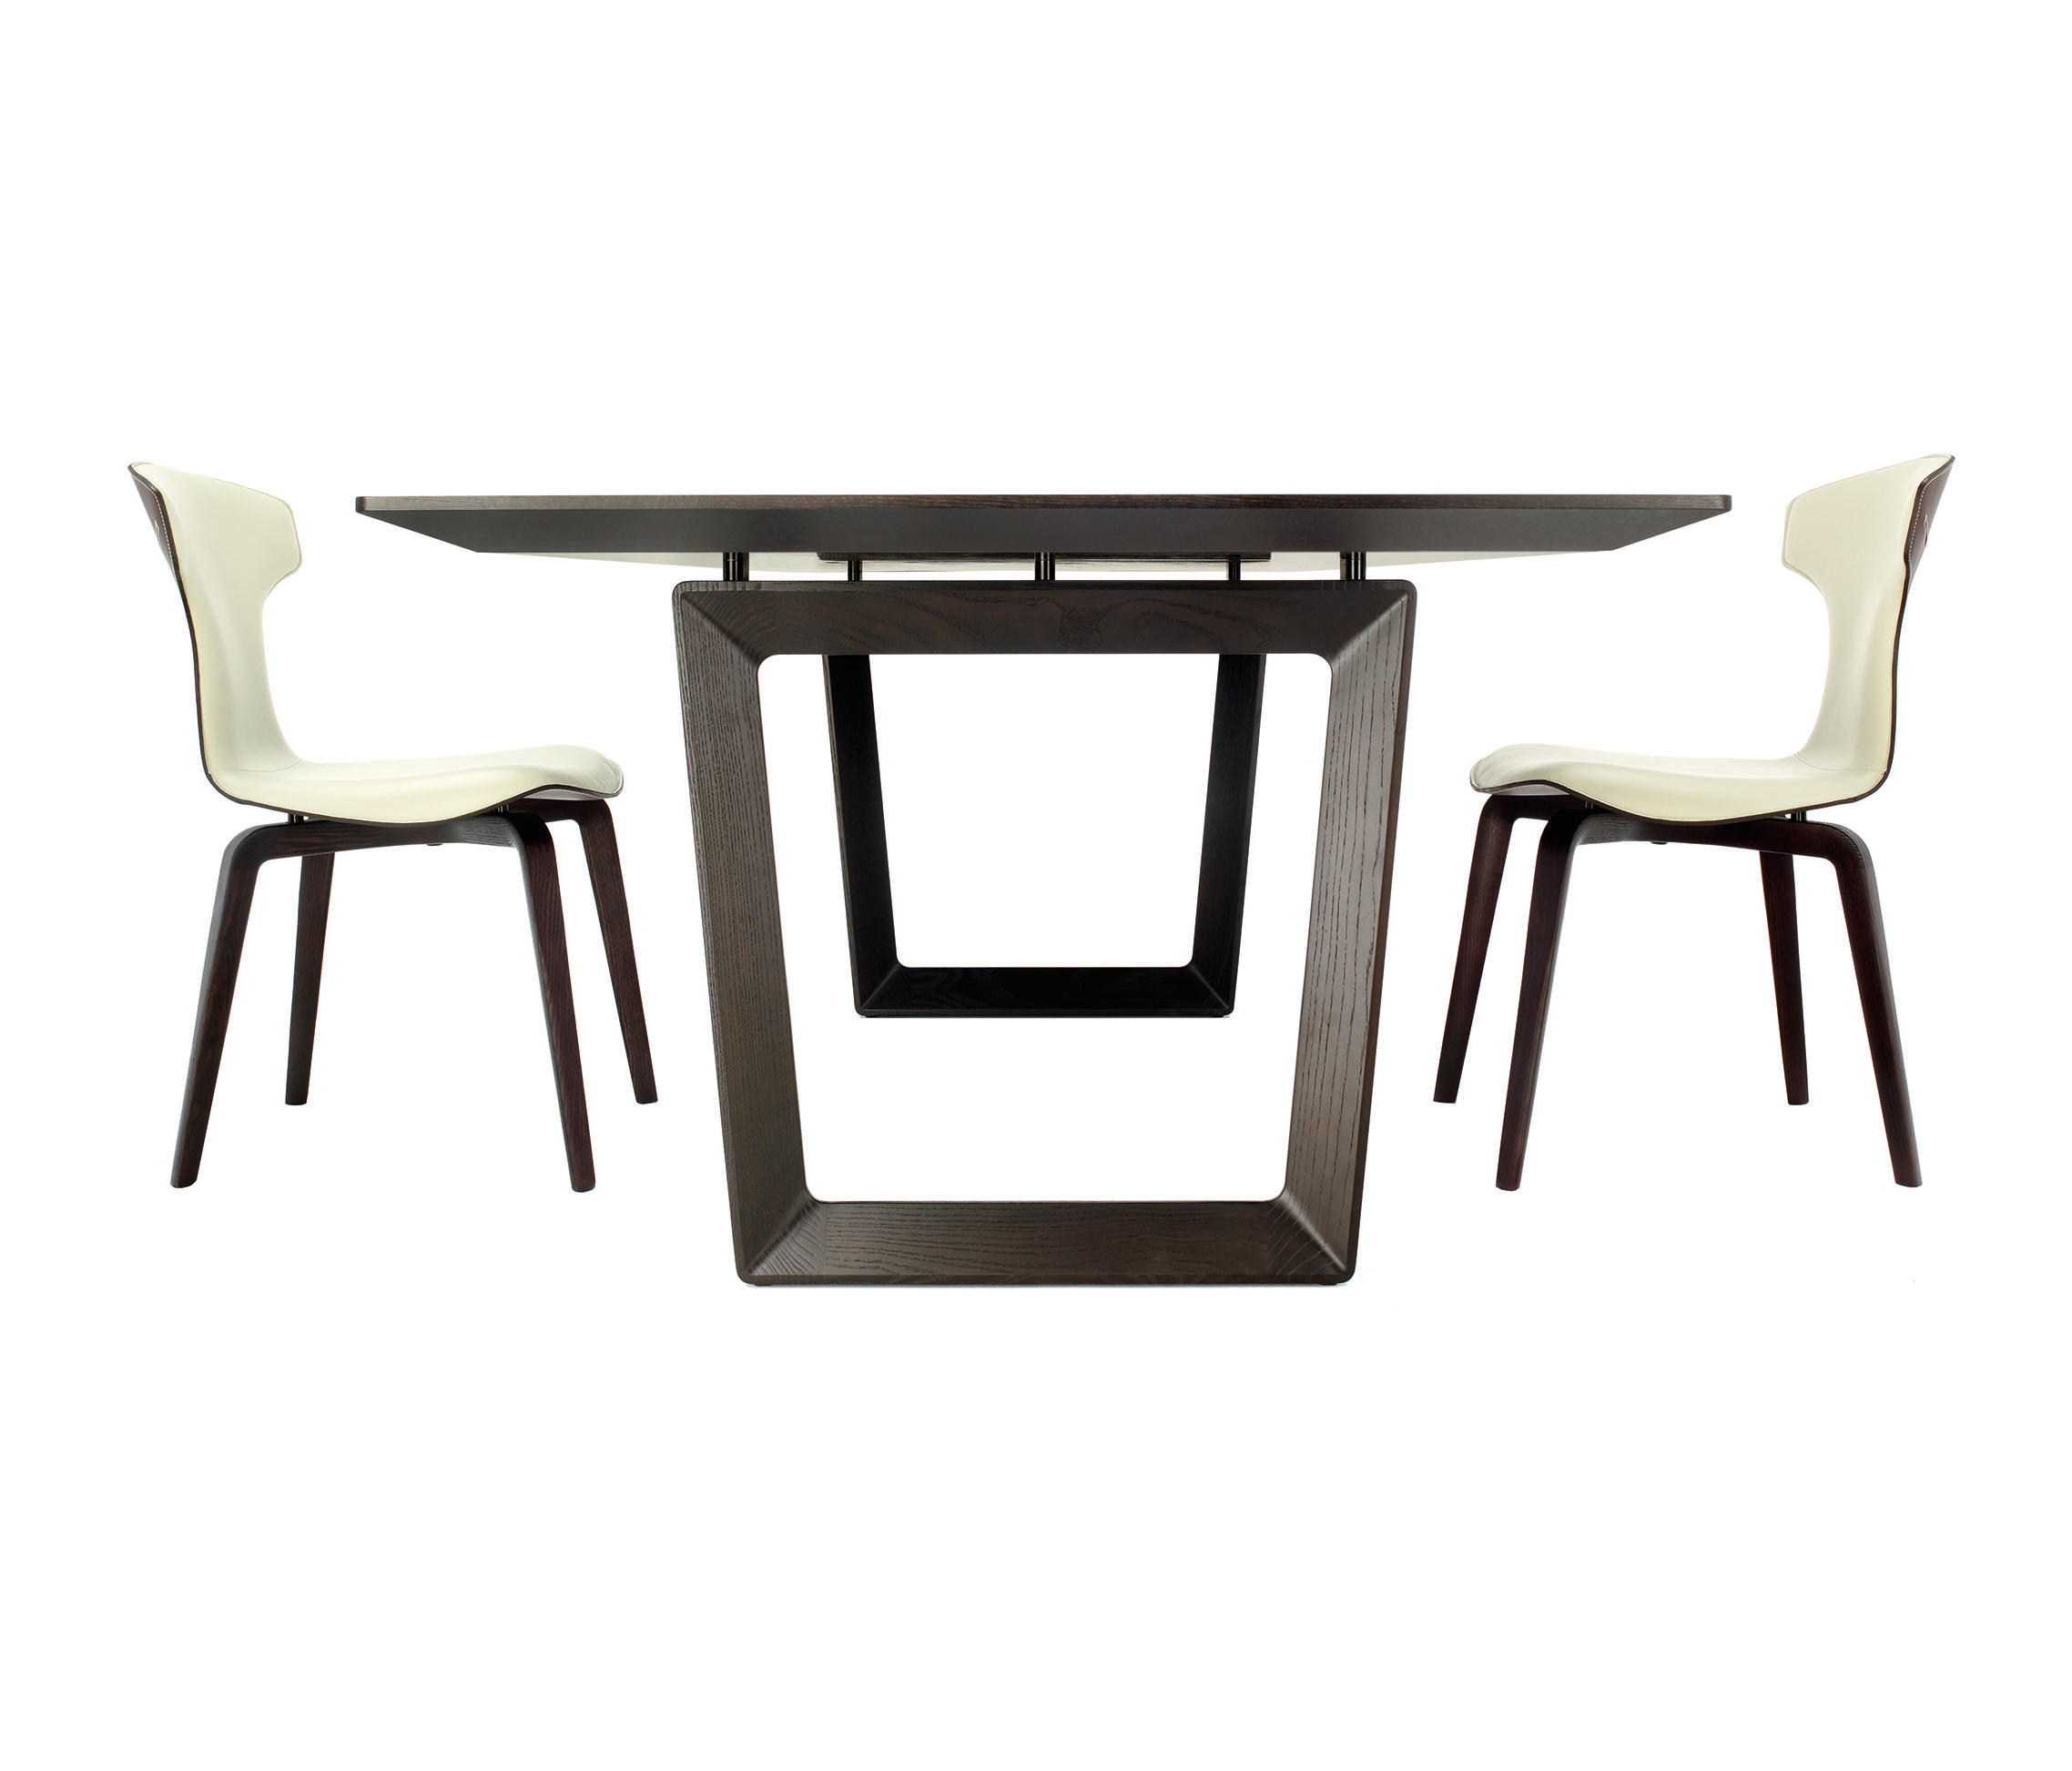 Bolero restaurant tables from poltrona frau architonic for Outlet poltrona frau tolentino